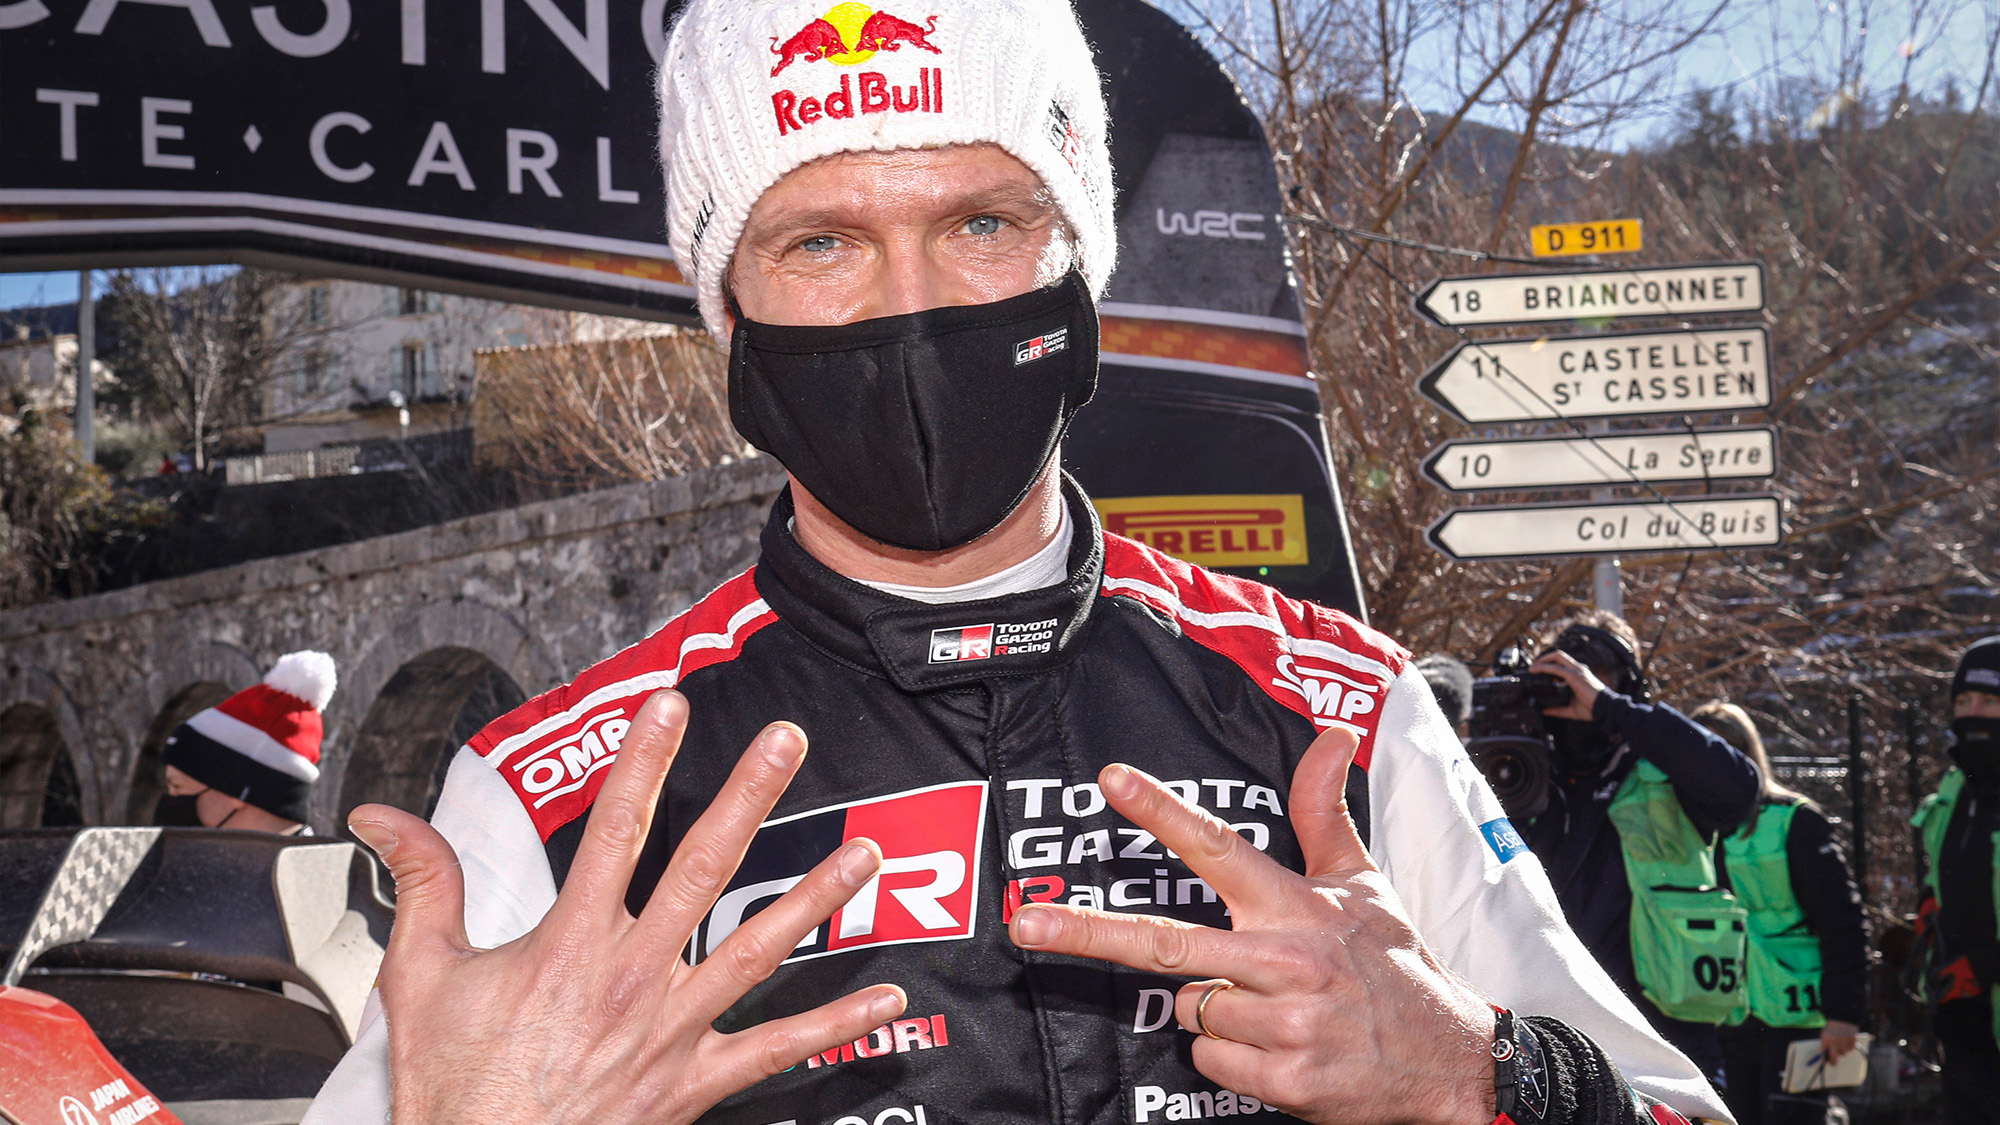 Sebastien Ogier celebrates his 8th Monte Carlo rally in 2021